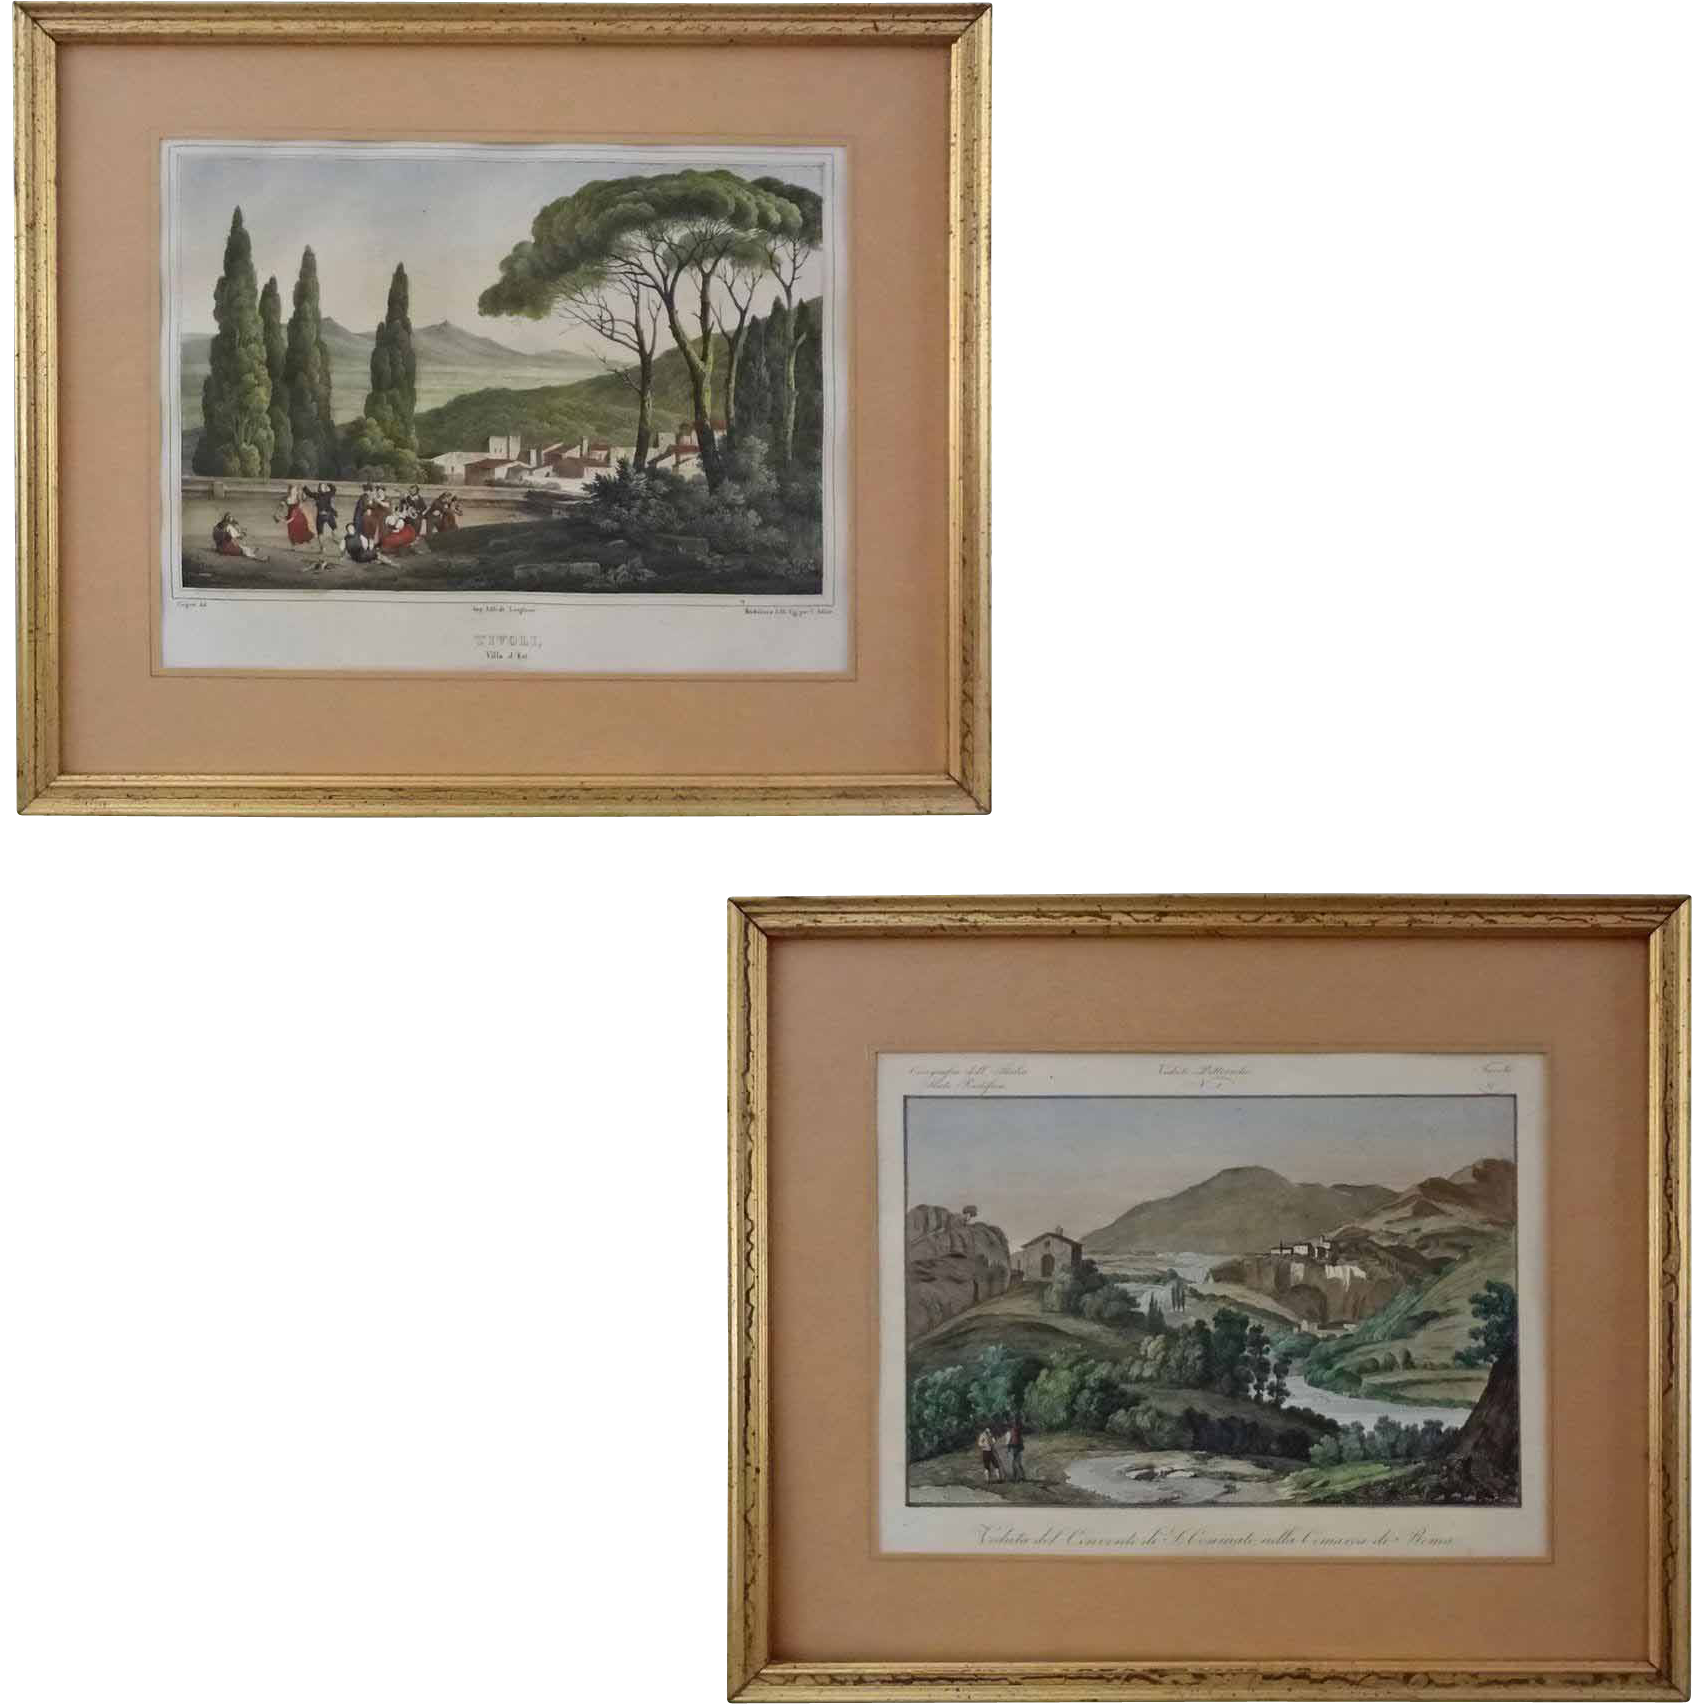 Pair Early Italian Views Villa d'Est Tivoli Lithograph and Valerian Way Engraving - 19th Century